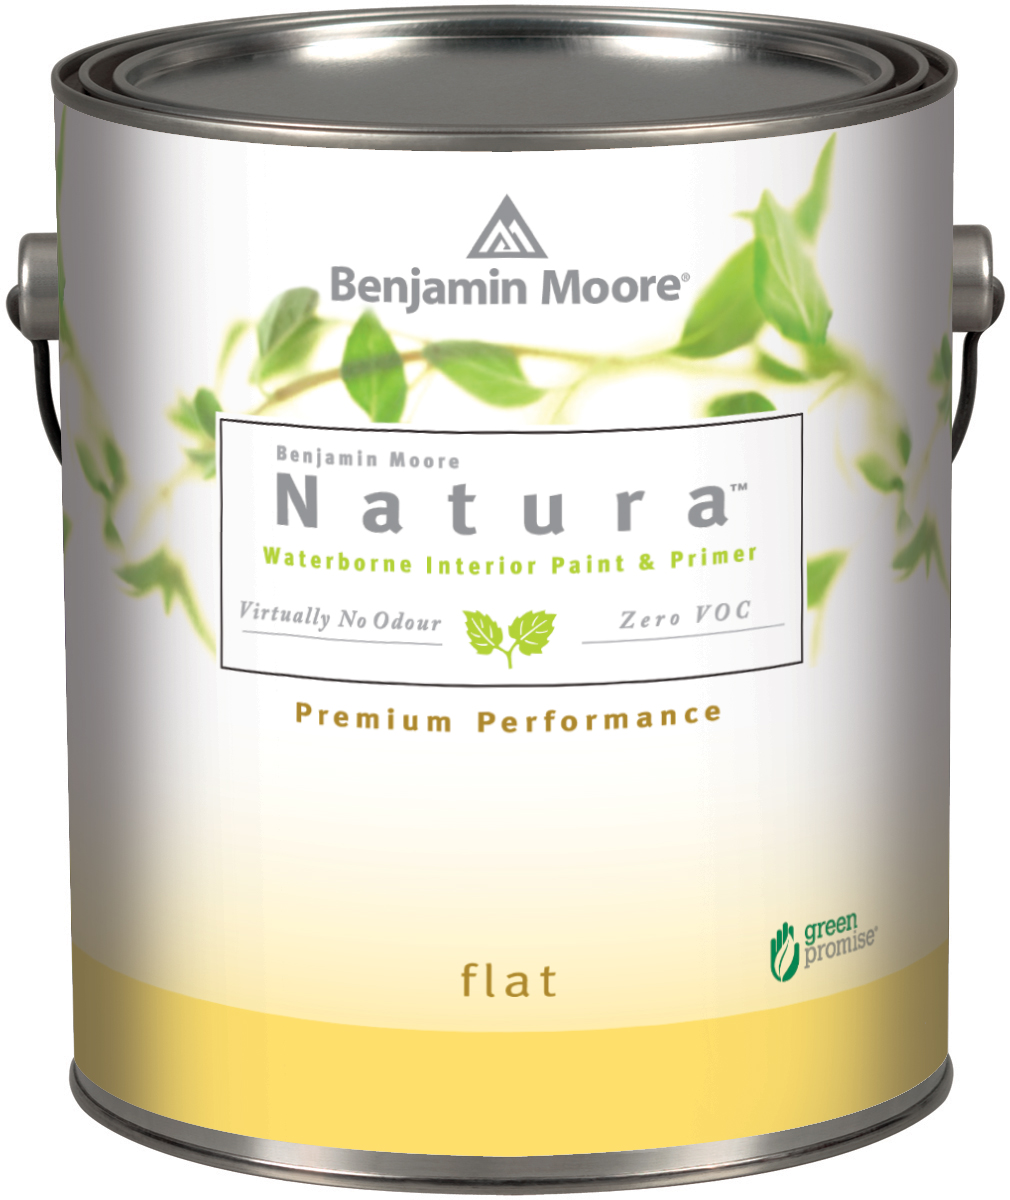 Benjamin Moore Exterior Paint And Primer In One